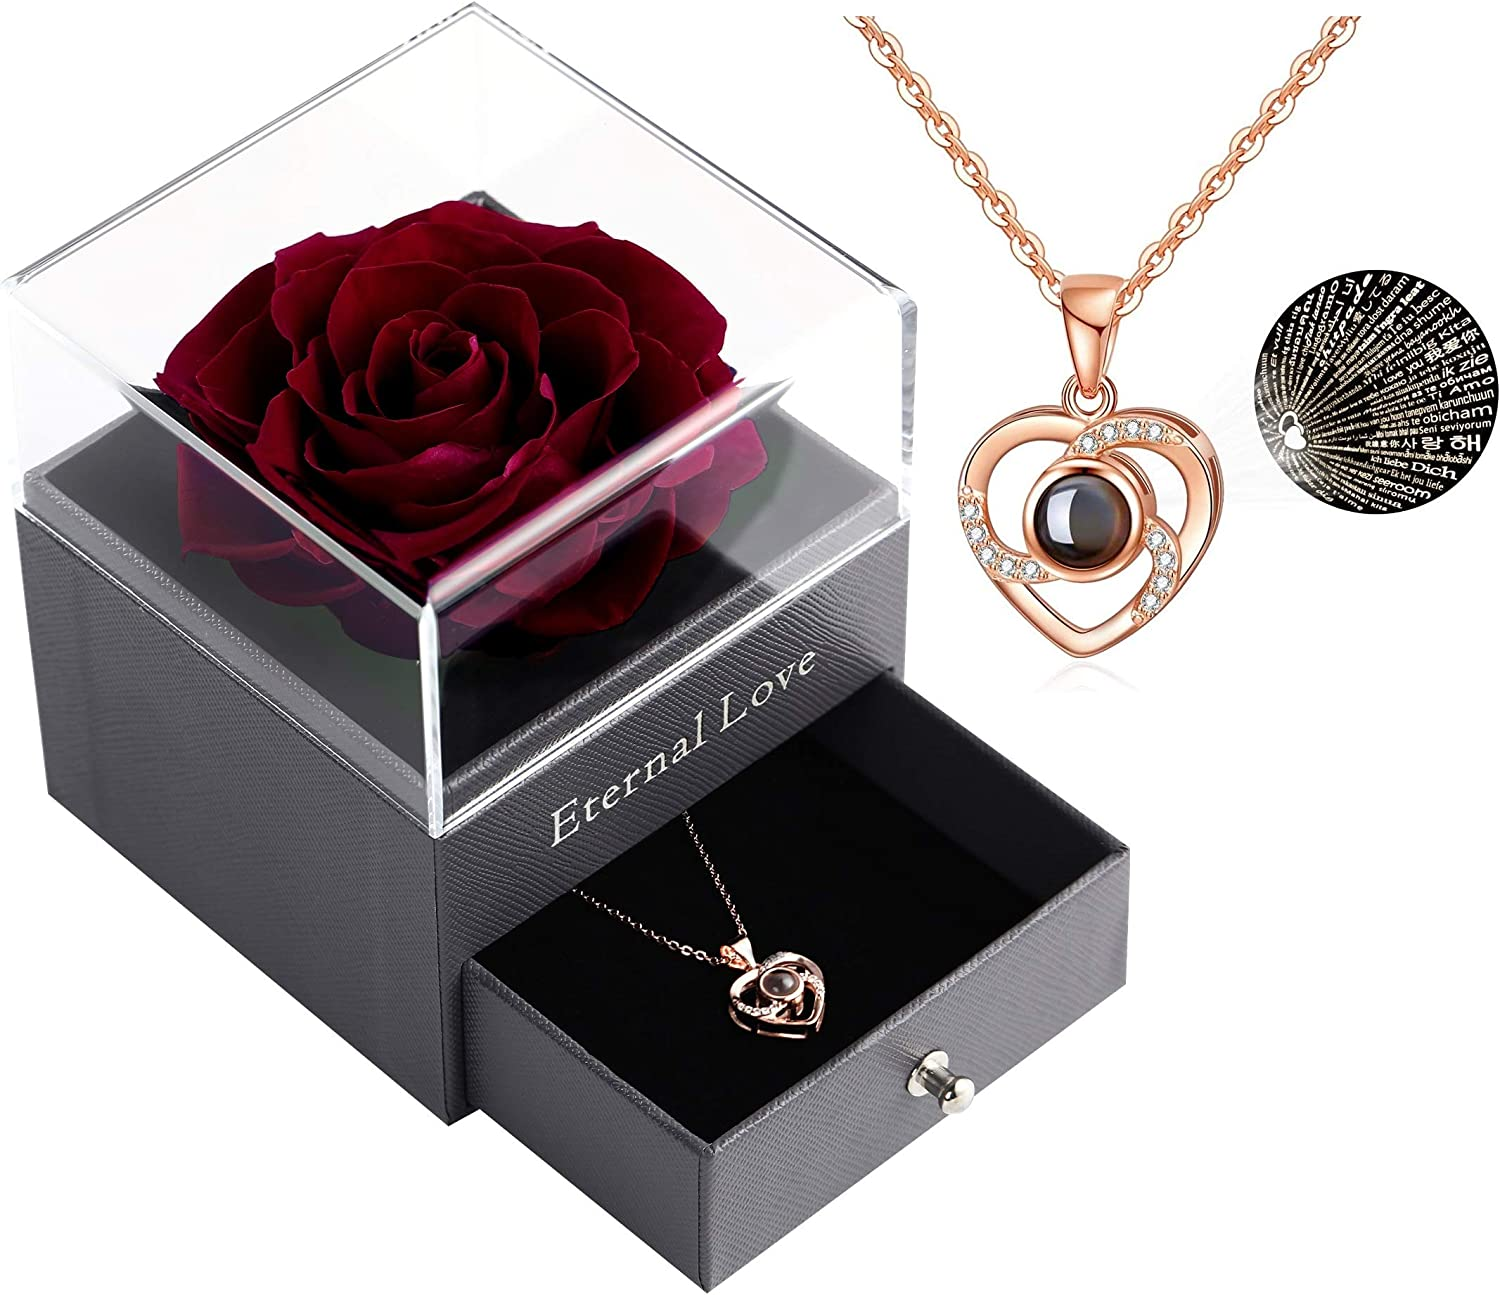 Black Rose Preserved Real Rose with Love You Necklace in 100 Languages Gift Set Enchanted Real Rose Flower for Valentines Day Anniversary Wedding Bthday Romantic Gifts for her